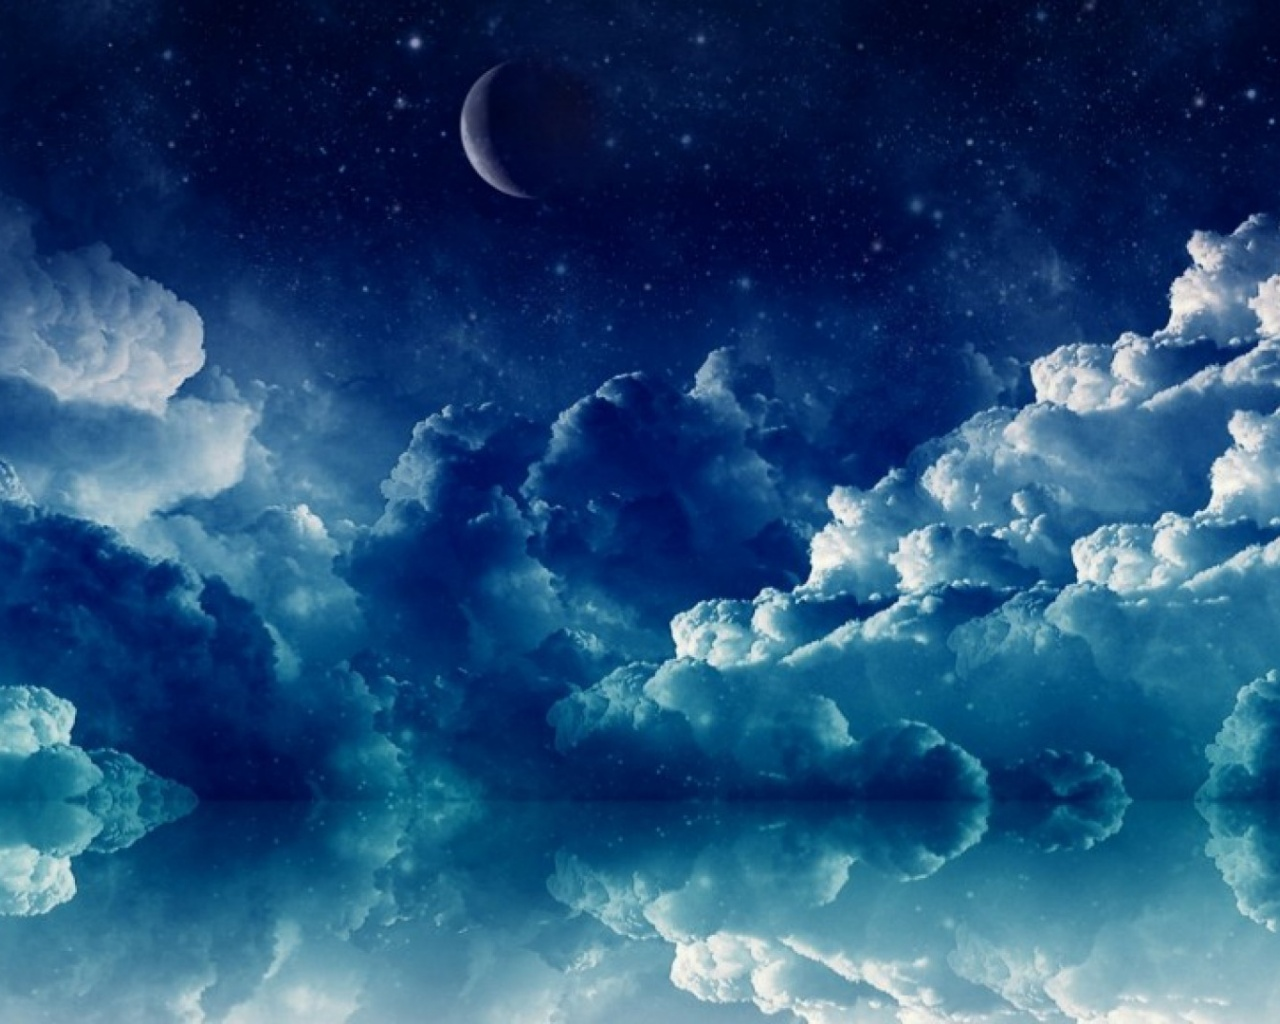 Ogie Banks Wallpapers Pretty Blue Wallpapers OriginalHD Pretty Blue Night